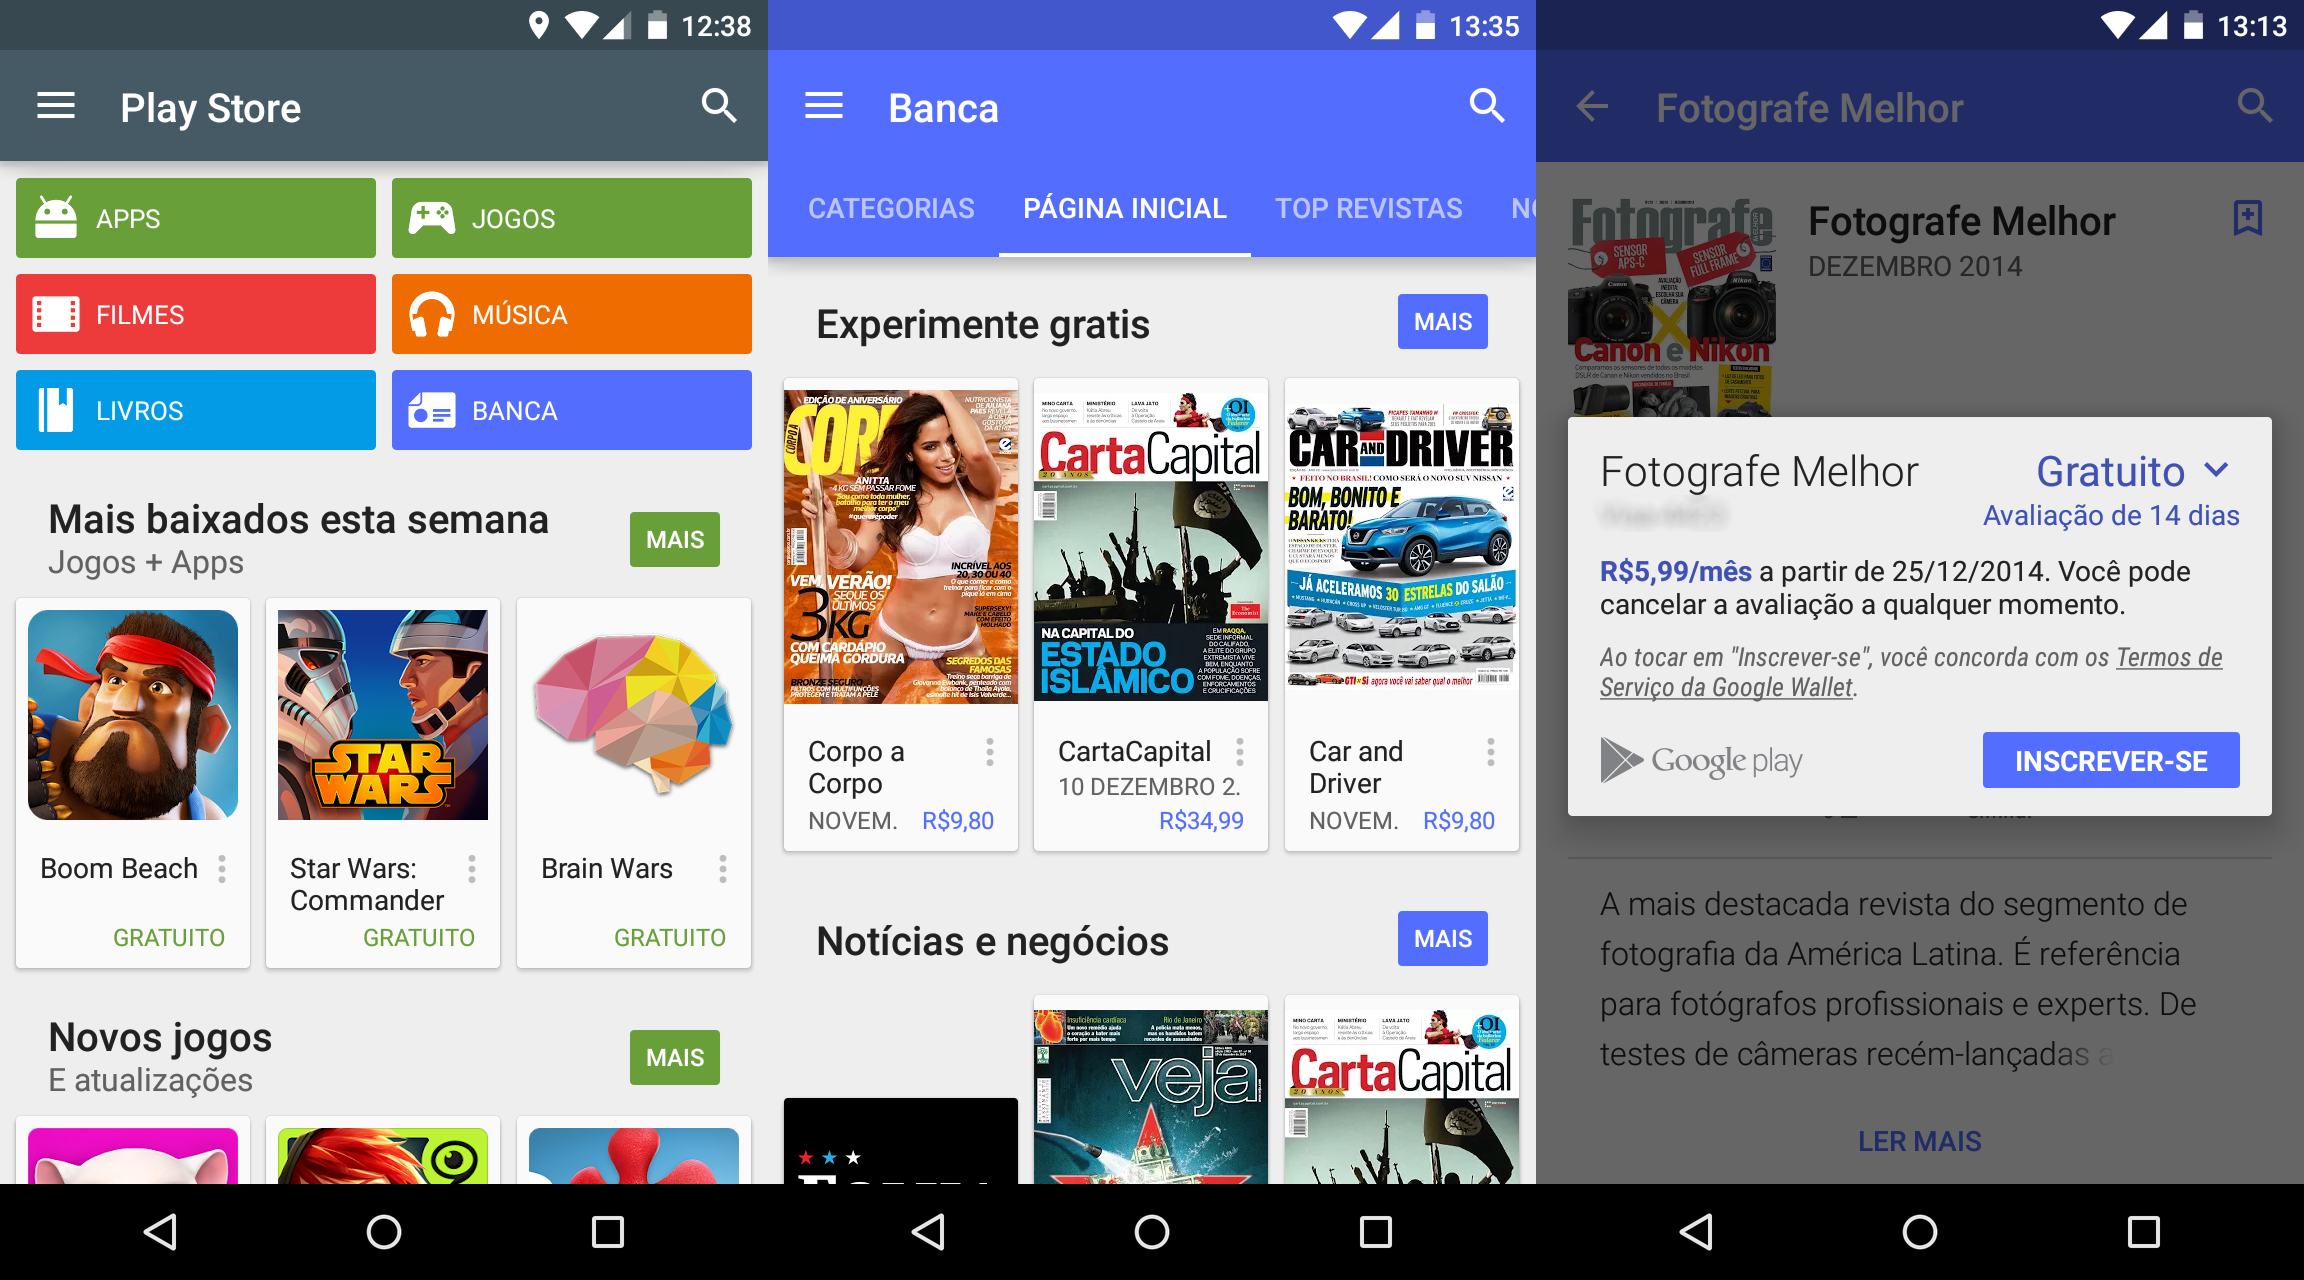 Google Play Banca oferece revistas